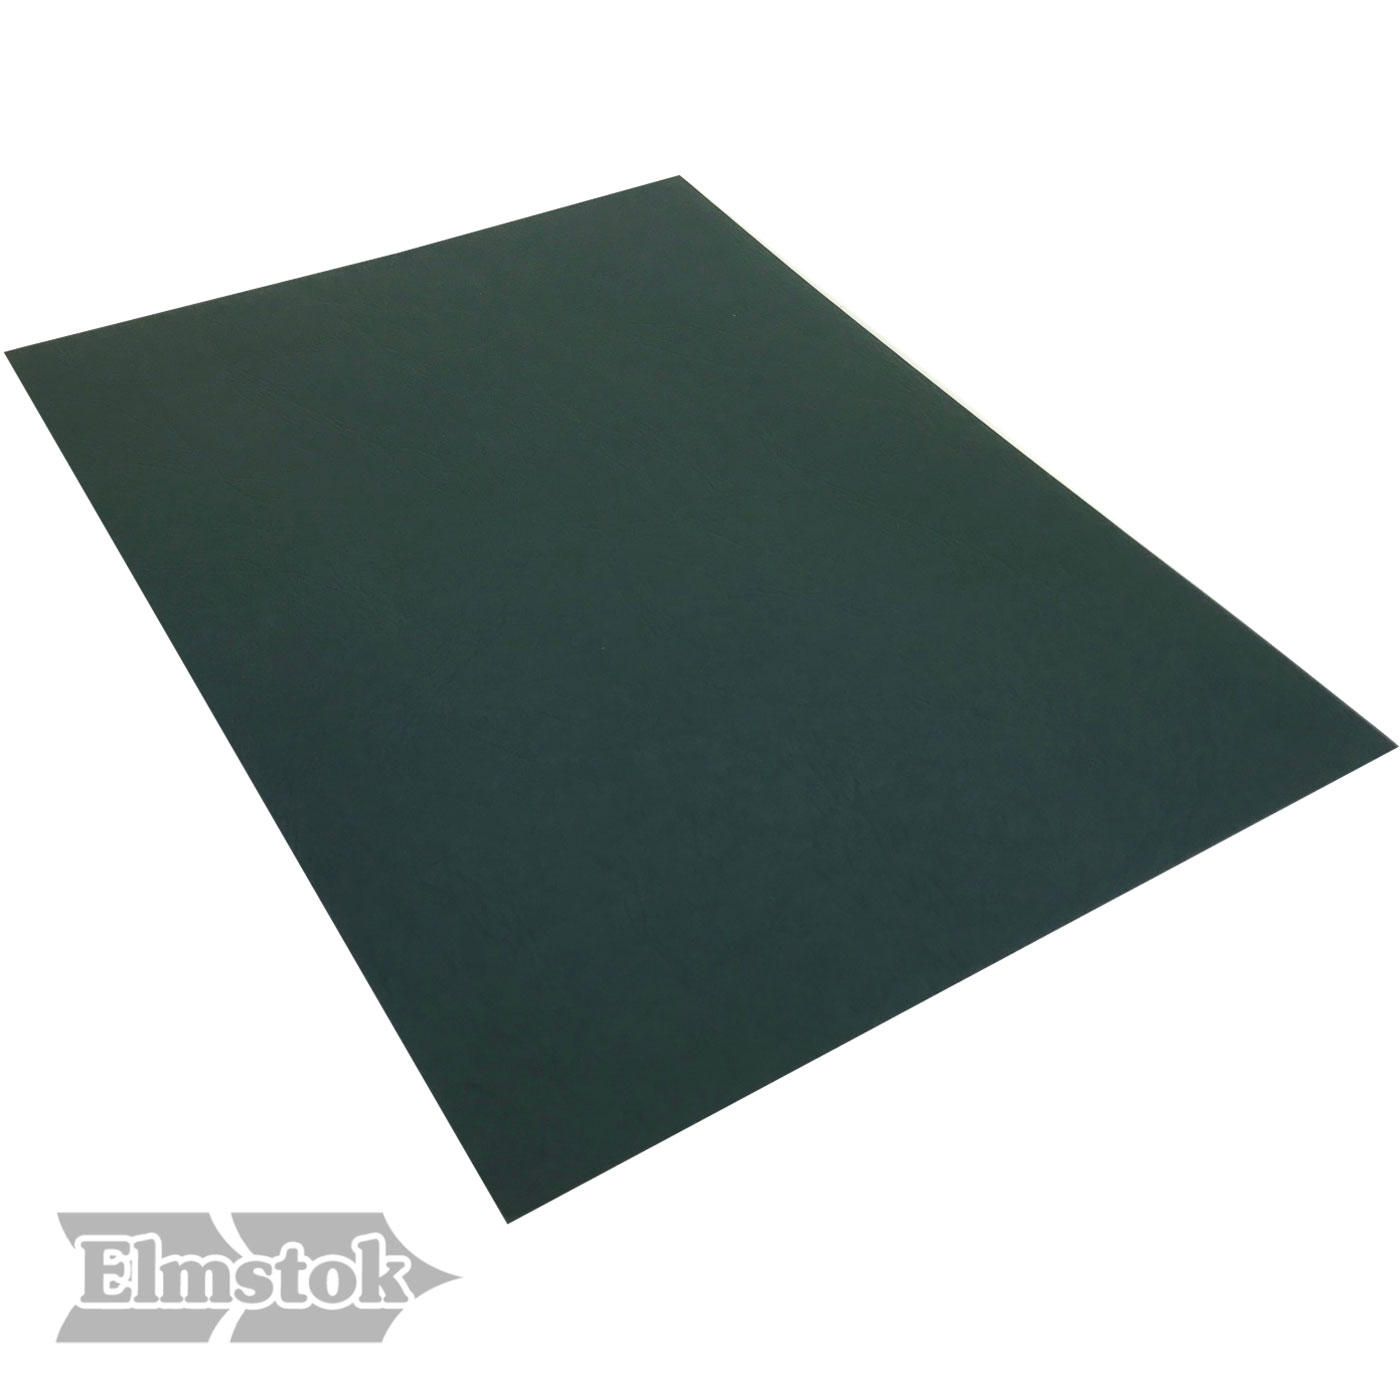 Deluxe Dark Green Leathergrain A4 Binding Covers (1000)